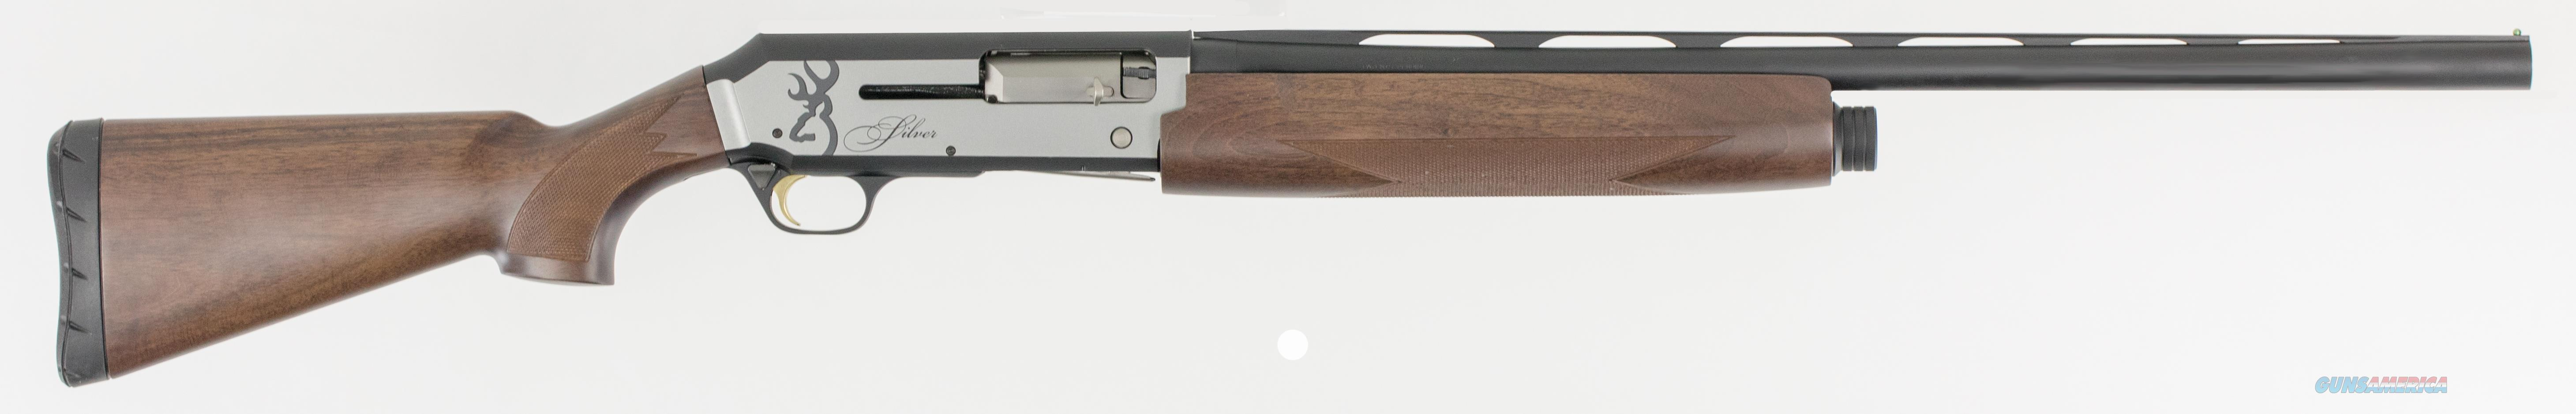 "Browning 011412606 Silver Hunter Micro Midas Matte Semi-Auto 20 Gauge 24"" 3"" Turkish Walnut Stk  Guns > Shotguns > B Misc Shotguns"